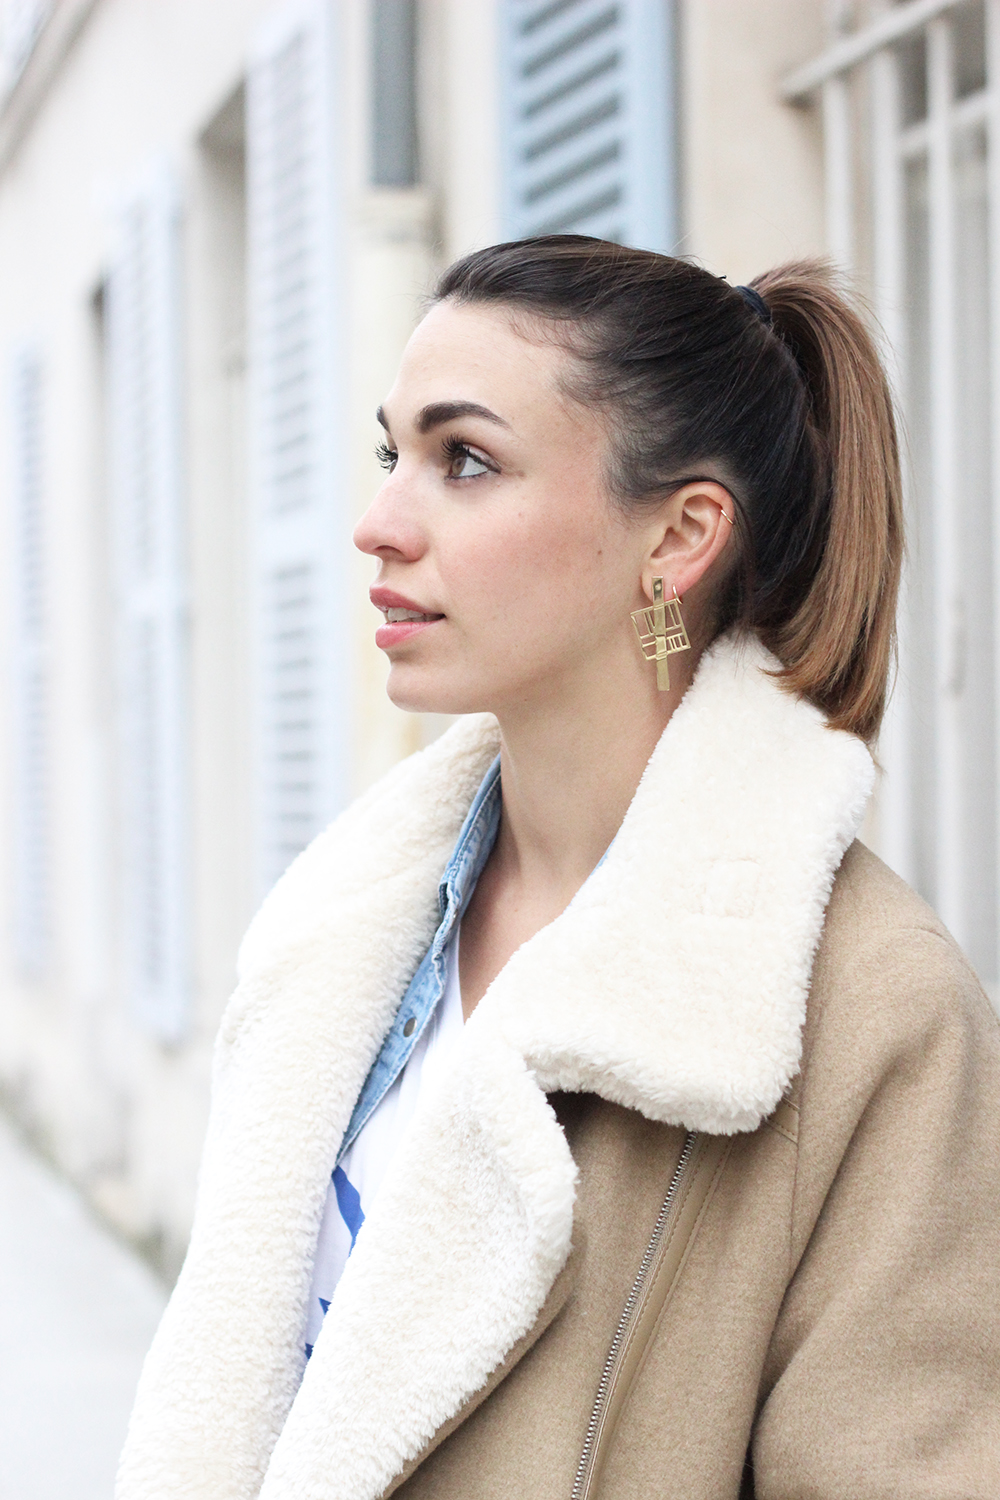 boucle-doreille-or-calepinage-emma-et-chloe2